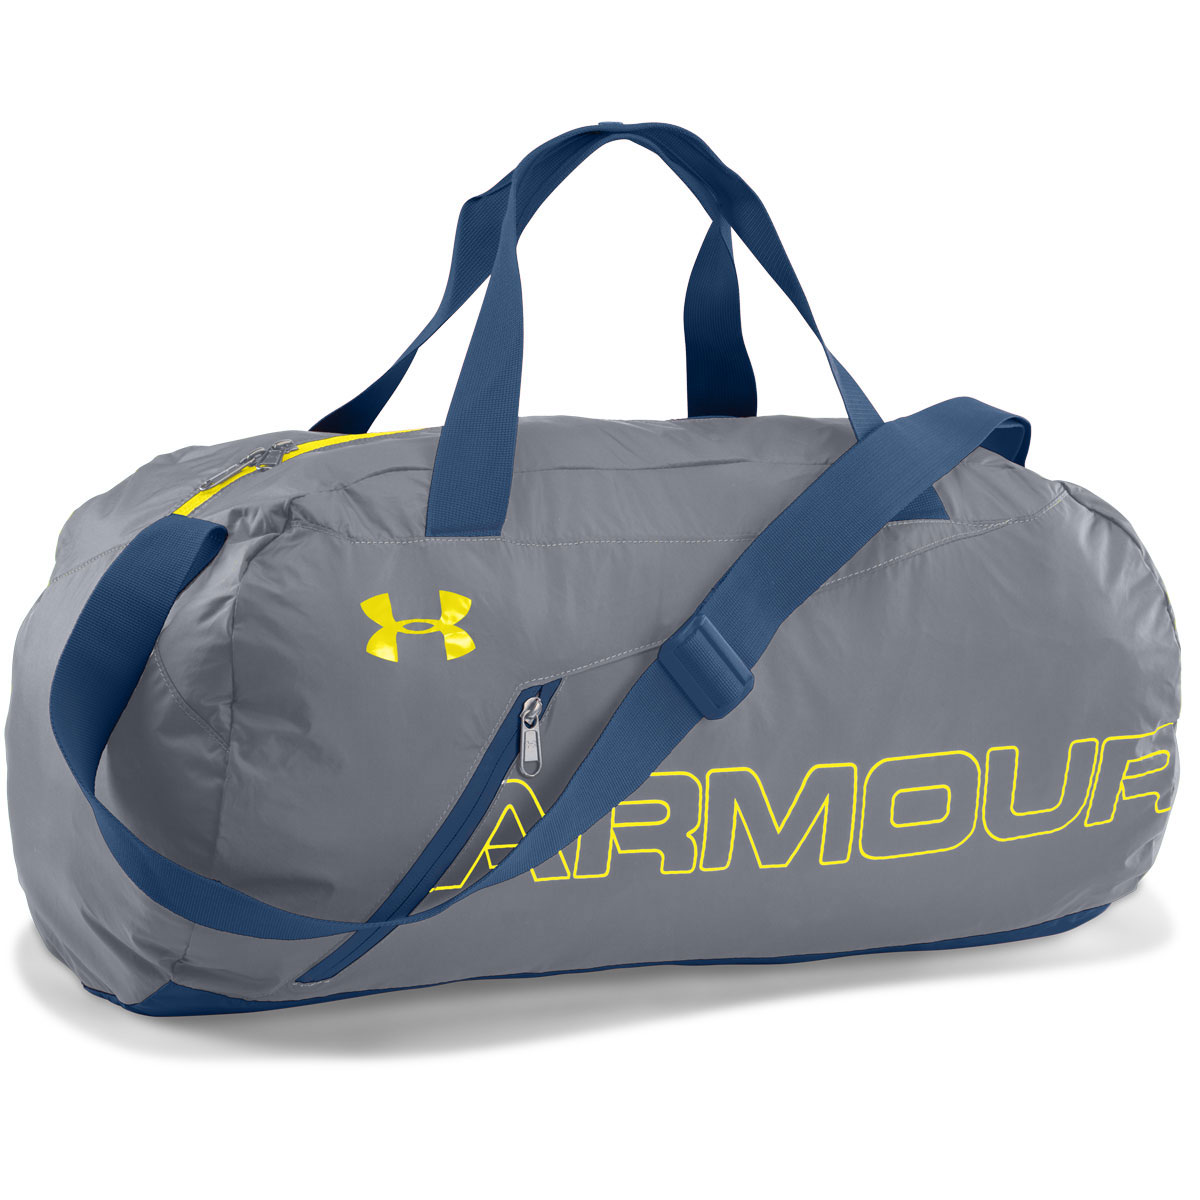 sports bag under armour cheap   OFF42% The Largest Catalog Discounts 3ad562a5adbb0